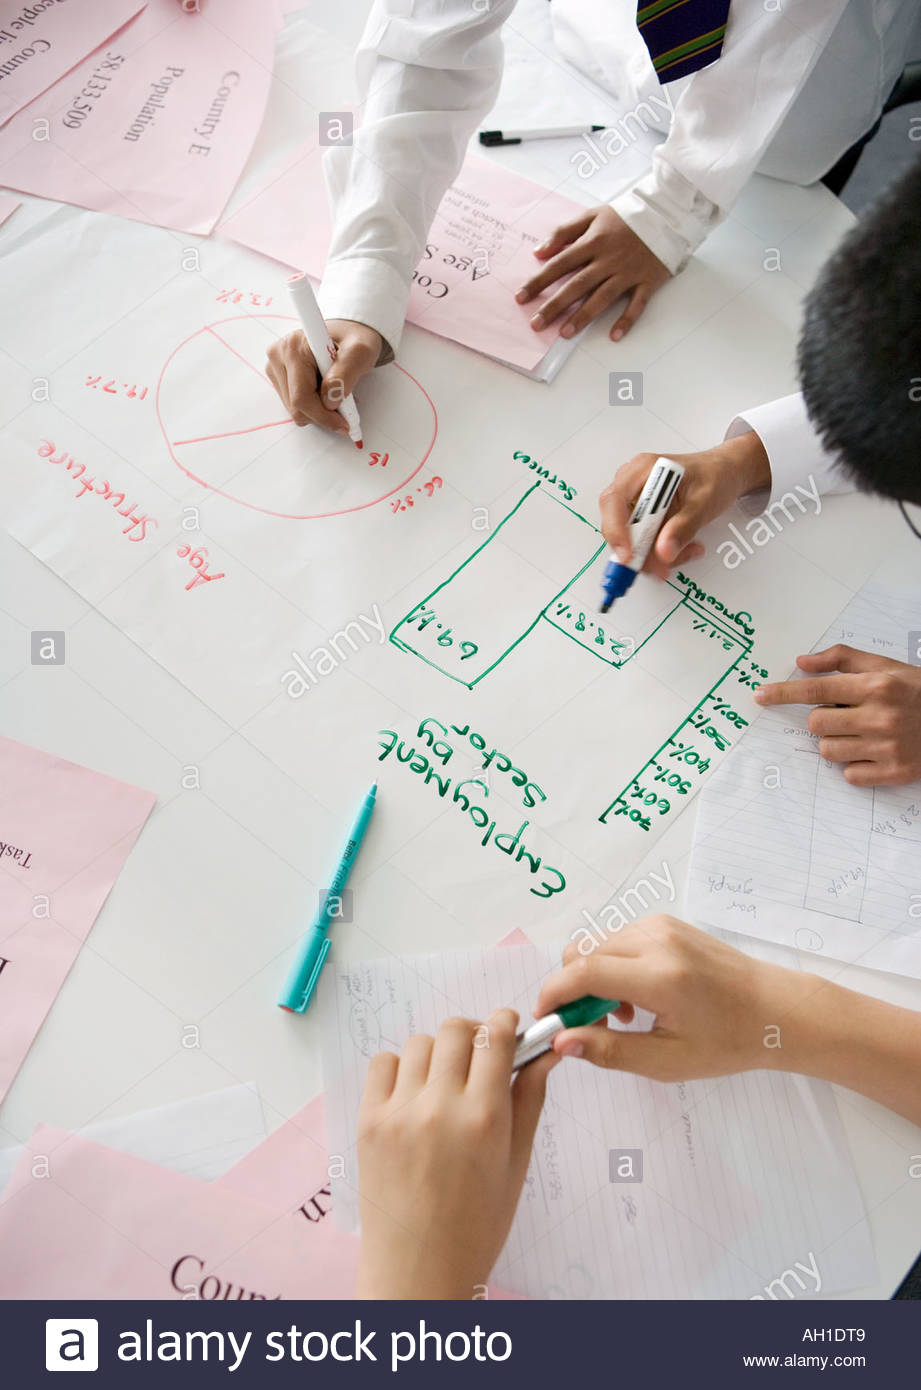 School boys working on maths logic and geography work - Stock Image